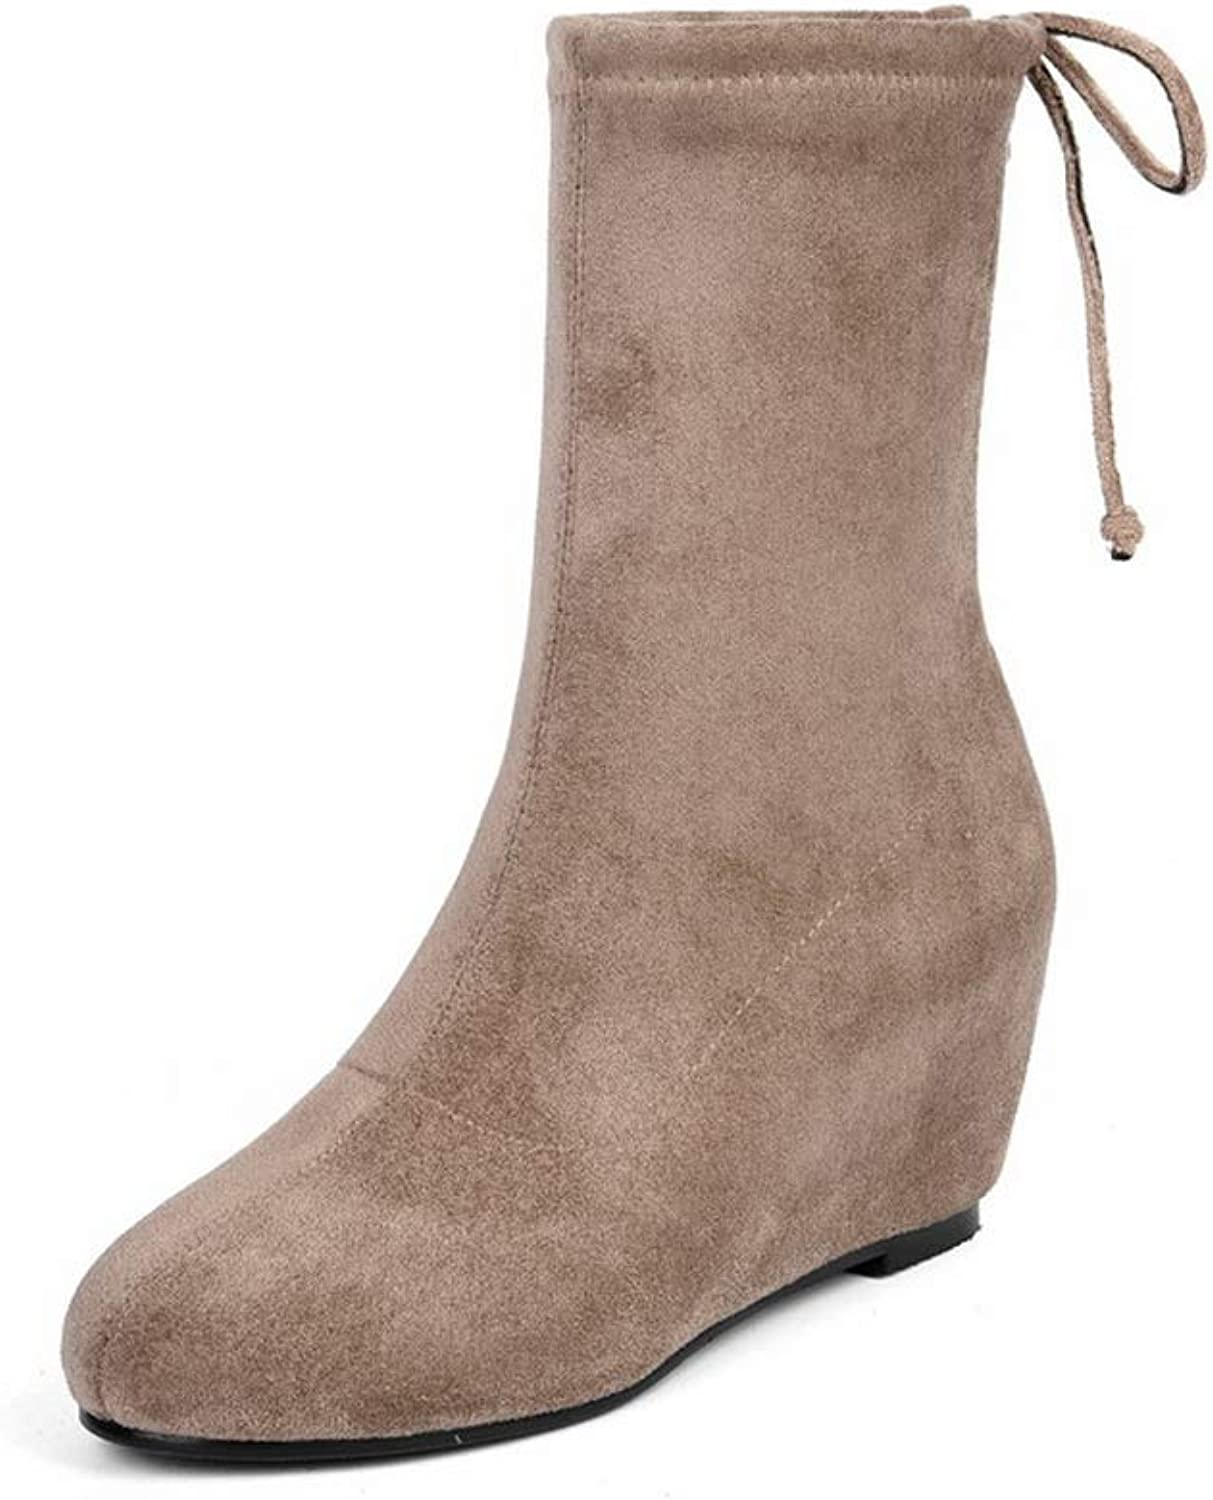 AdeeSu Womens Bucket-Style Wedges Boots Leather Boots SXE04431